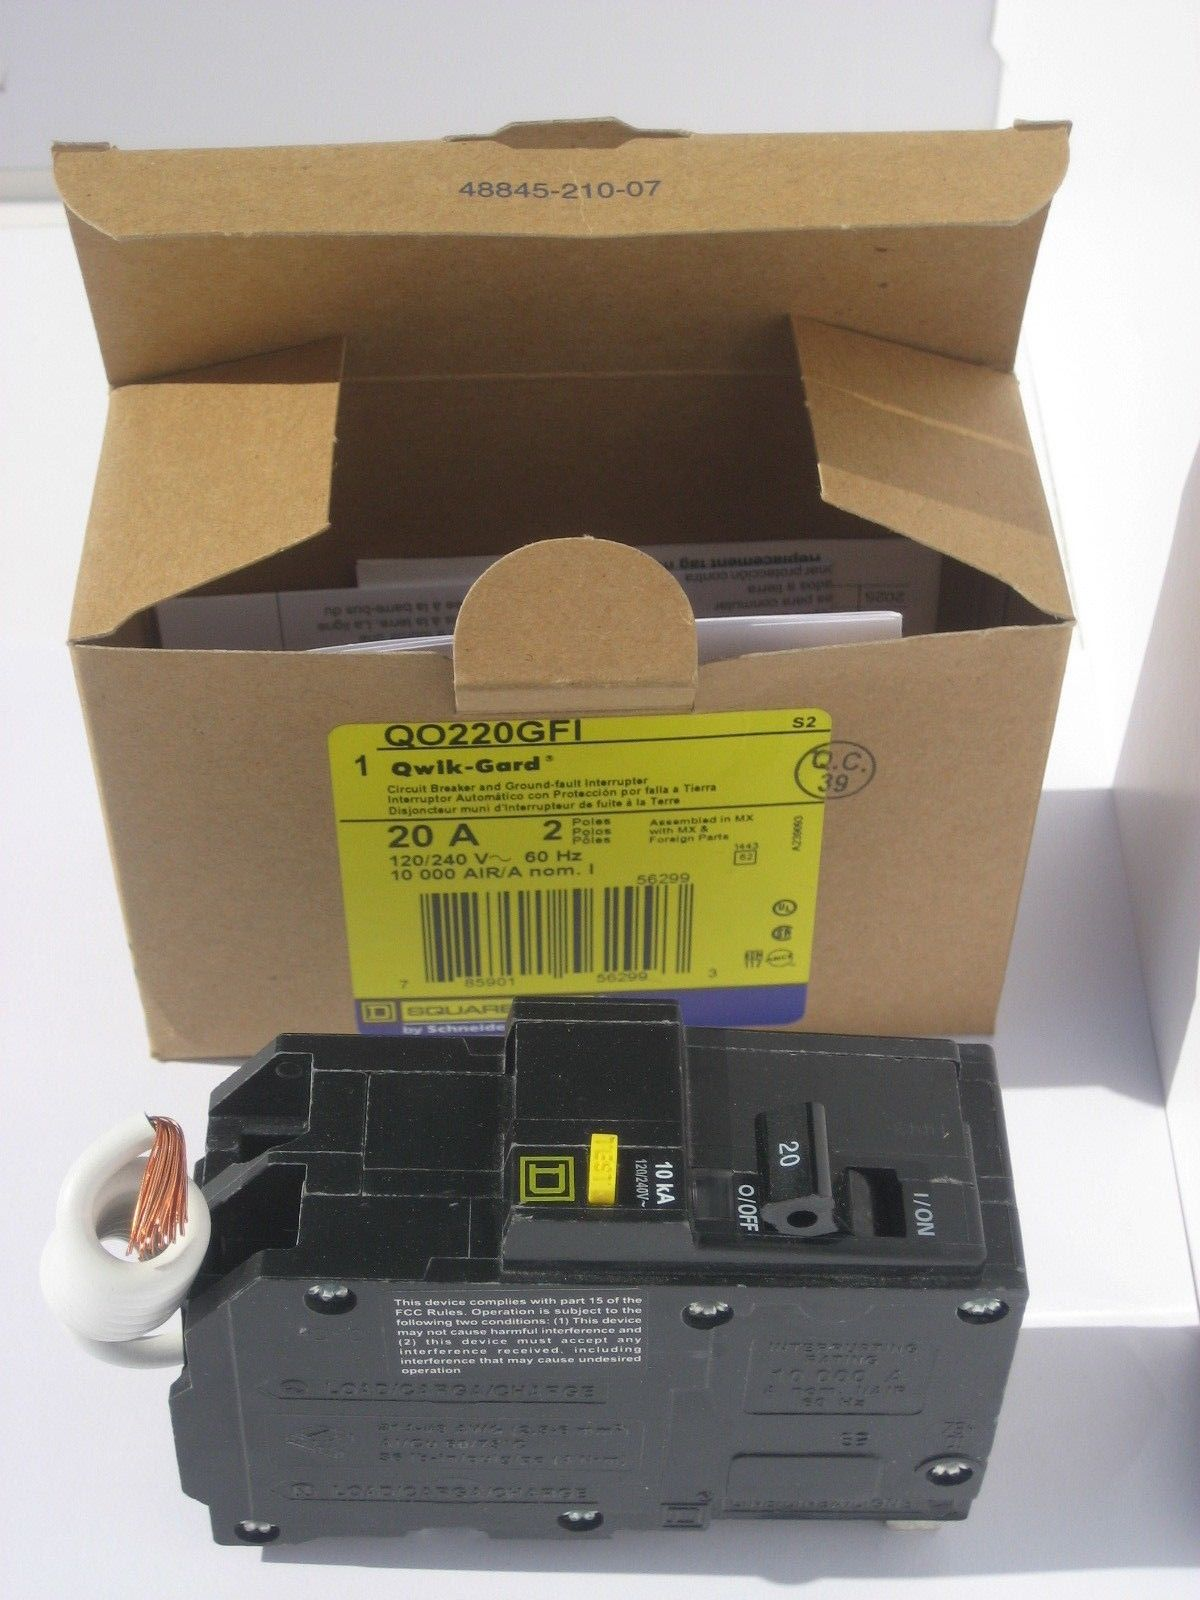 NIB SQUARE D QO220GFI 2 Pole 20 Amp QO Ground Fault Breaker GFCI QO STYLE 331507582449 3?fit=1200%2C1600&ssl=1 nib square d qo220gfi 2 pole 20 amp qo ground fault breaker gfci 20 Amp 125 Volt Outlet at cos-gaming.co